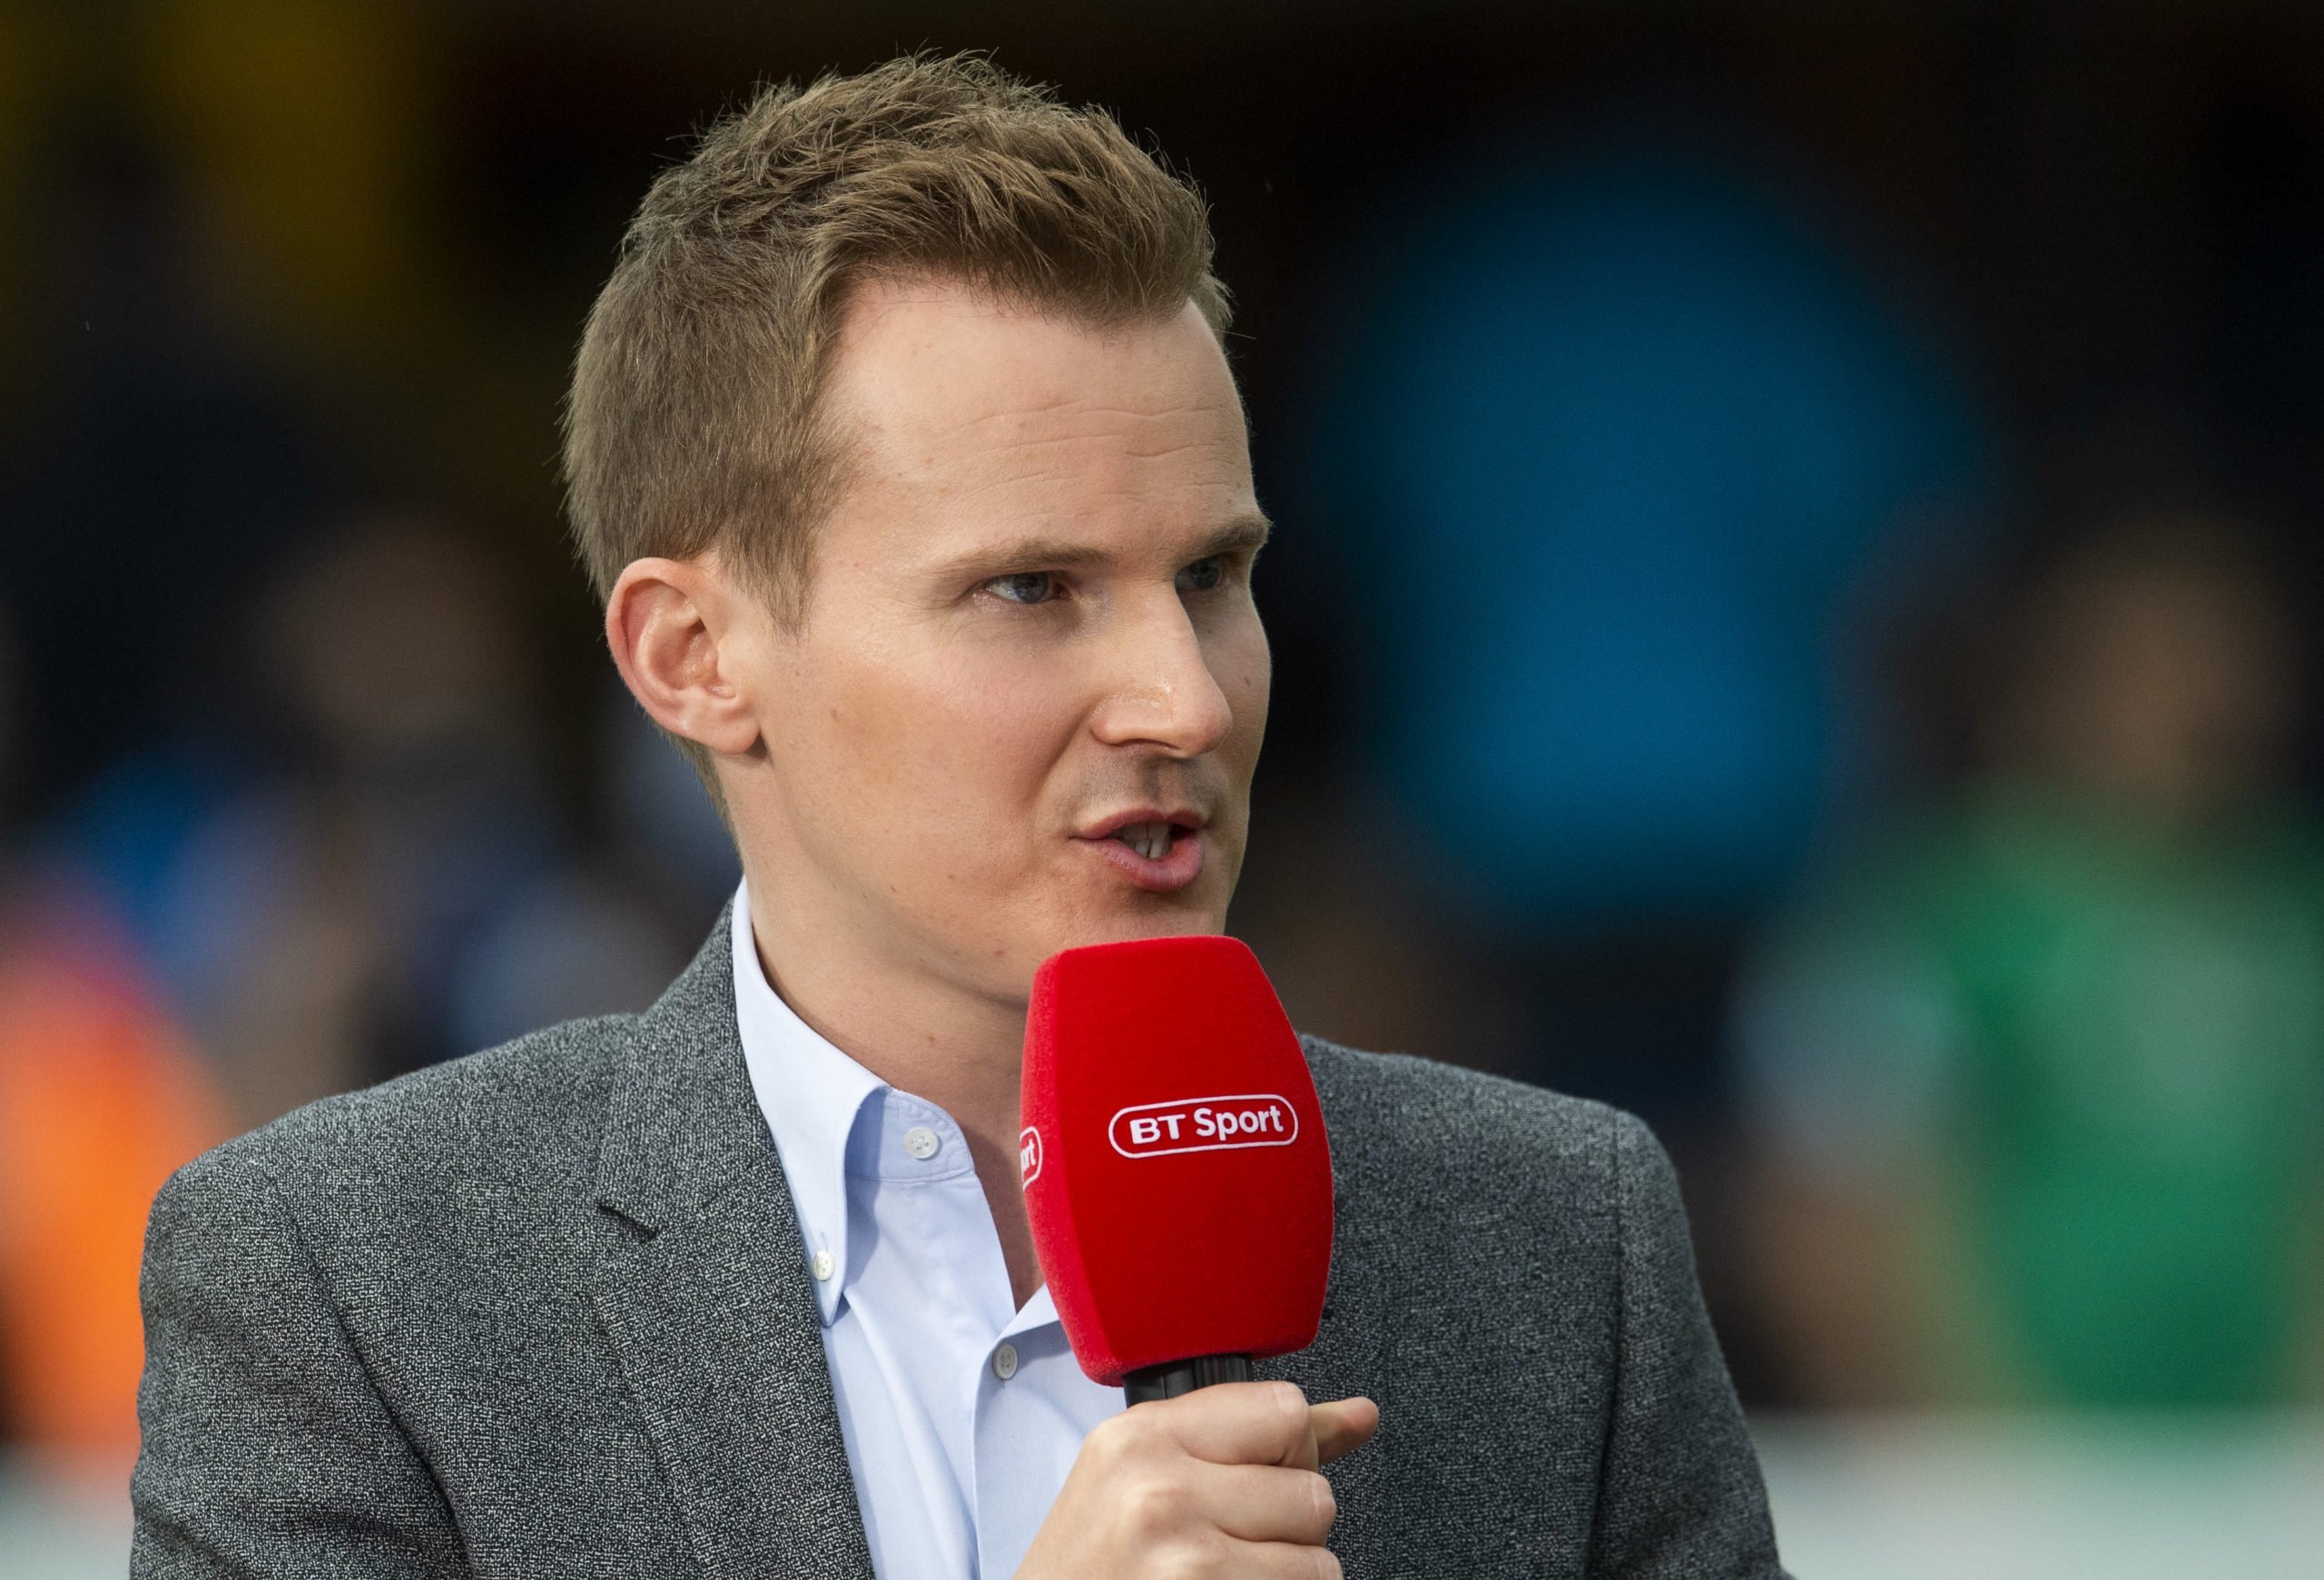 Broadcast star Currie will miss fronting BT Sport's Scottish football coverage